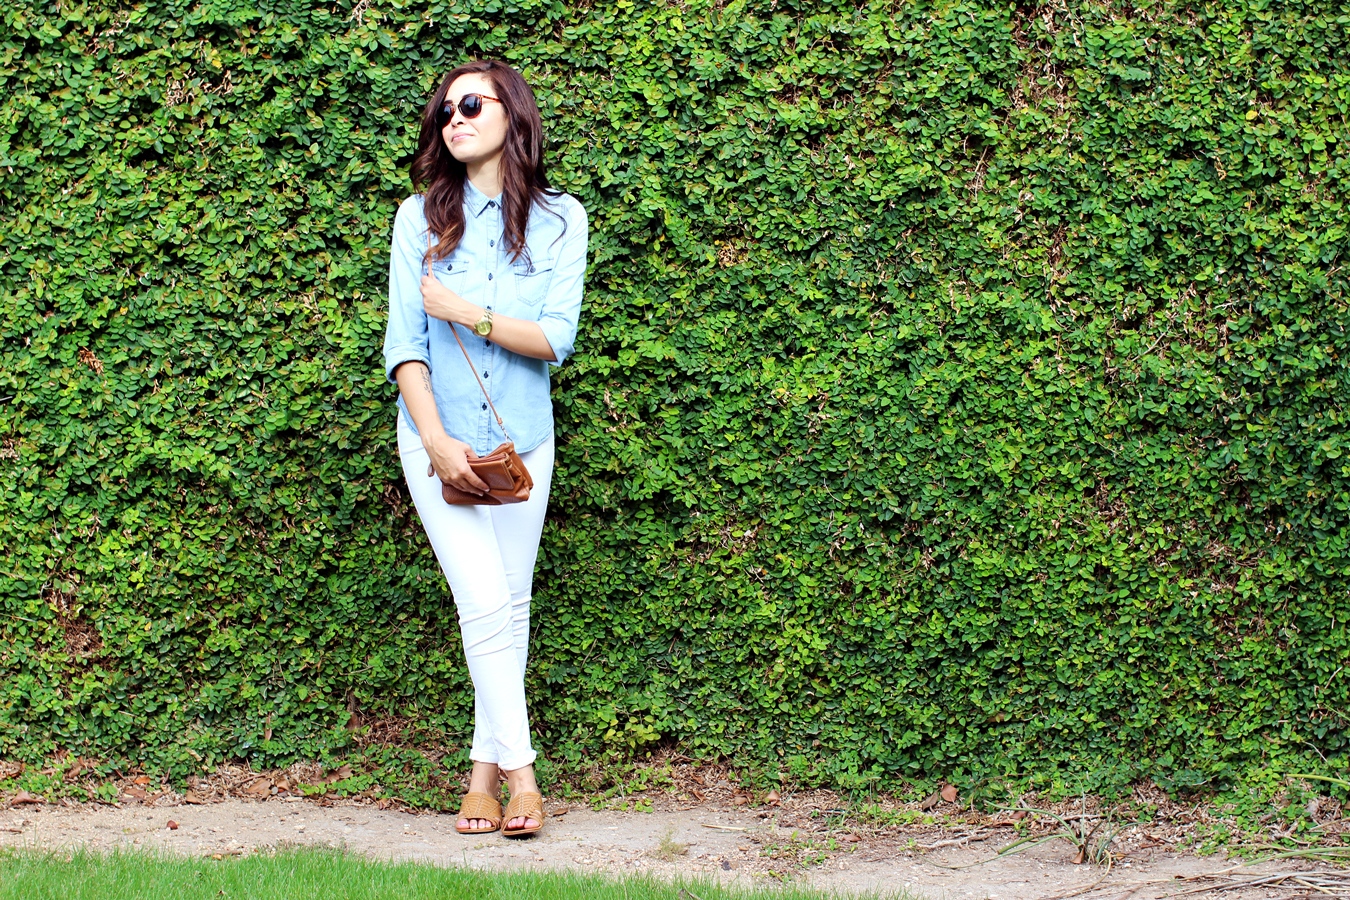 CASUAL-CHAMBRAY-WHITE-DENIM-AMERICAN-GIRL-CLASSIC-SUMMER-STYLE-FIXIN-TO-THRILL-AUSTIN-FASHION-BLOG-TEXAS-4